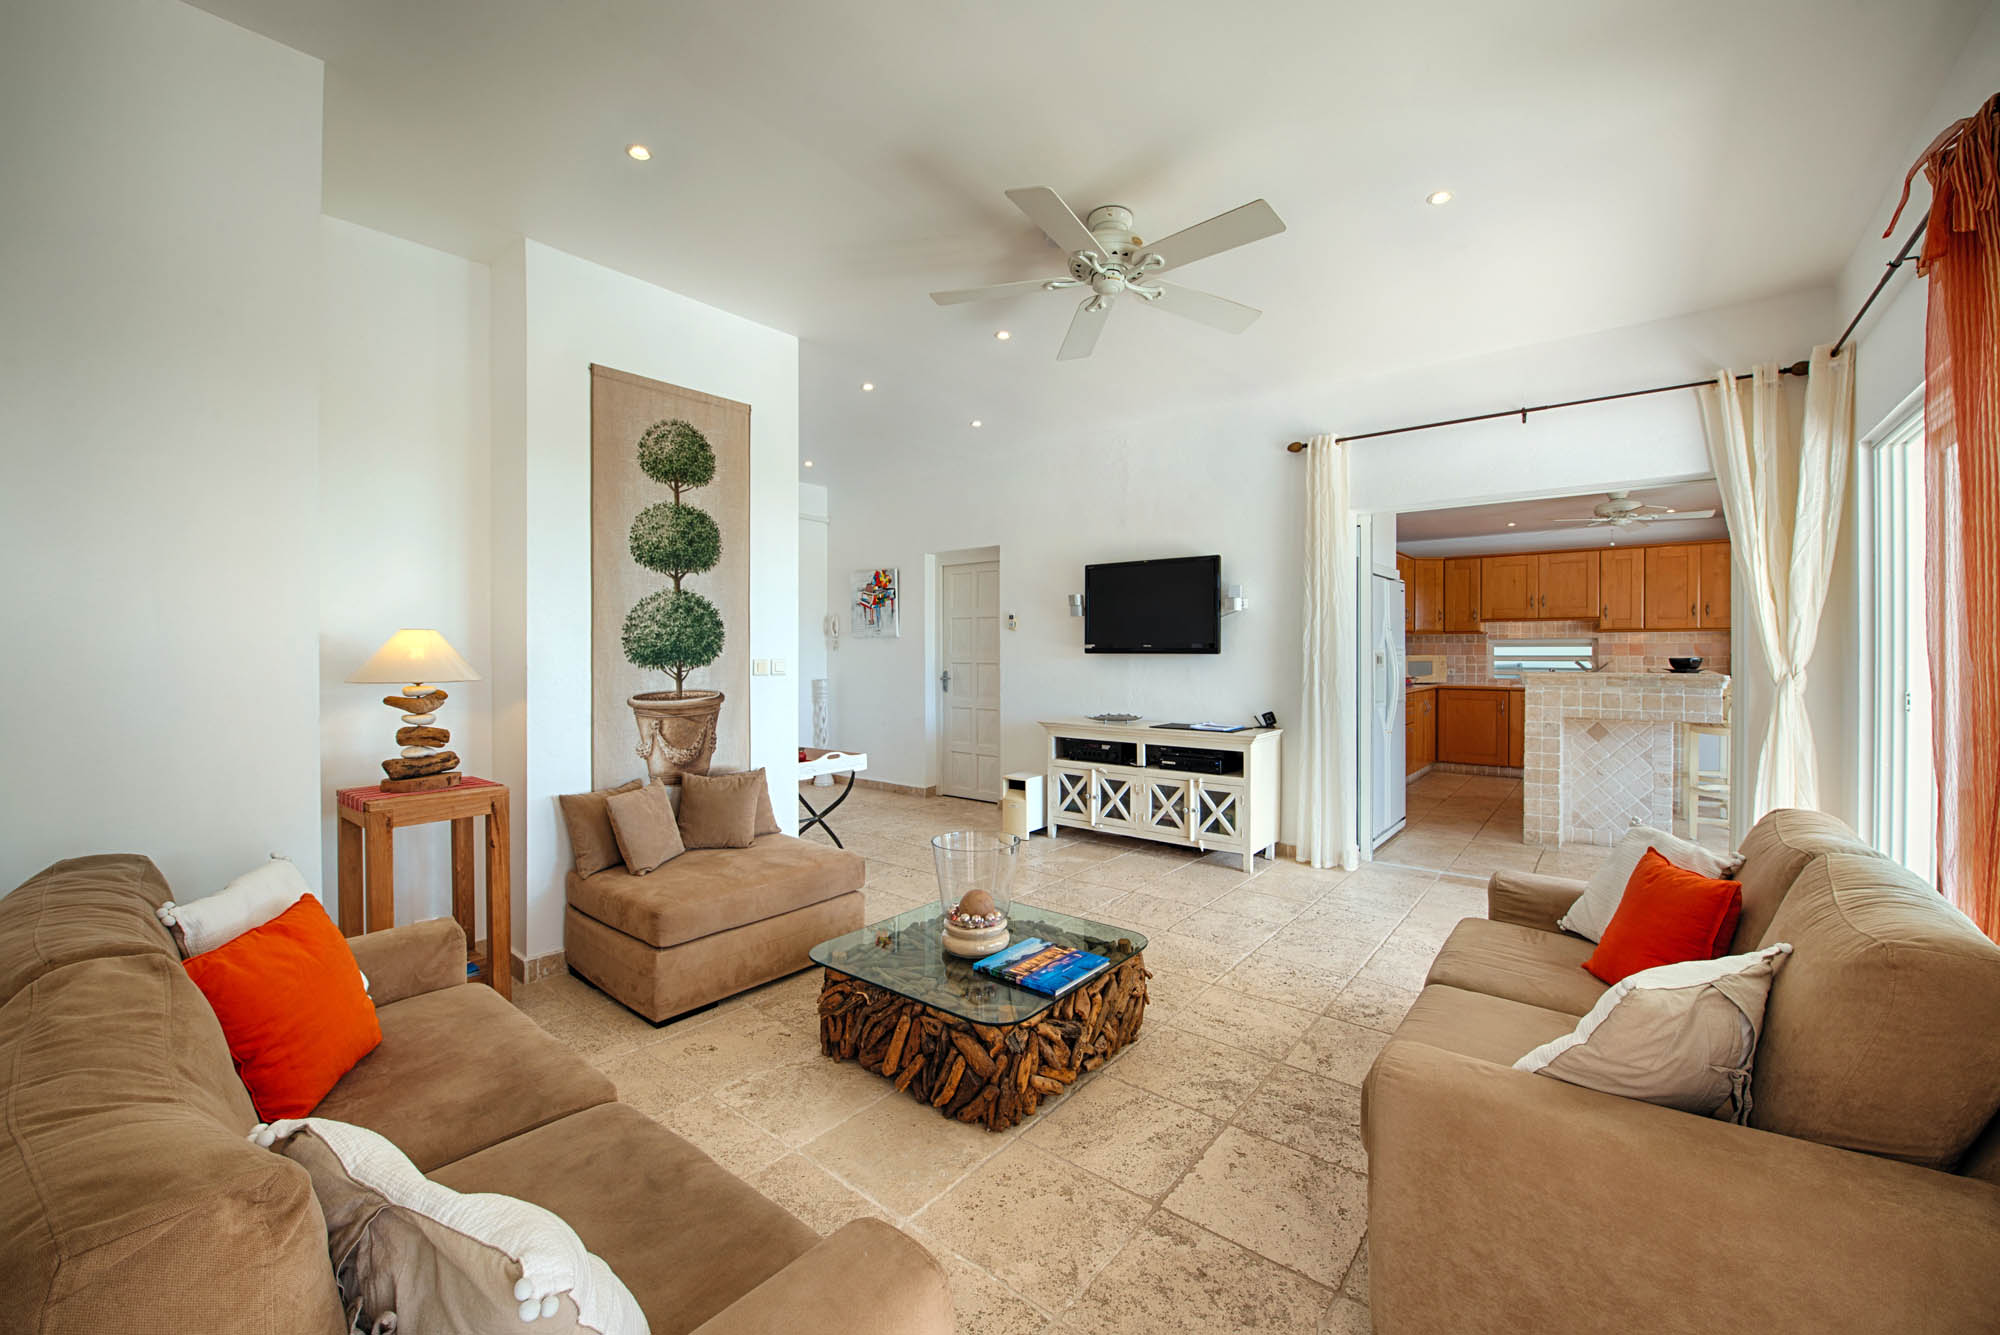 The living room of this Terres-Basses holiday villa rental features contemporary furniture, celing fans and a flat screen TV.